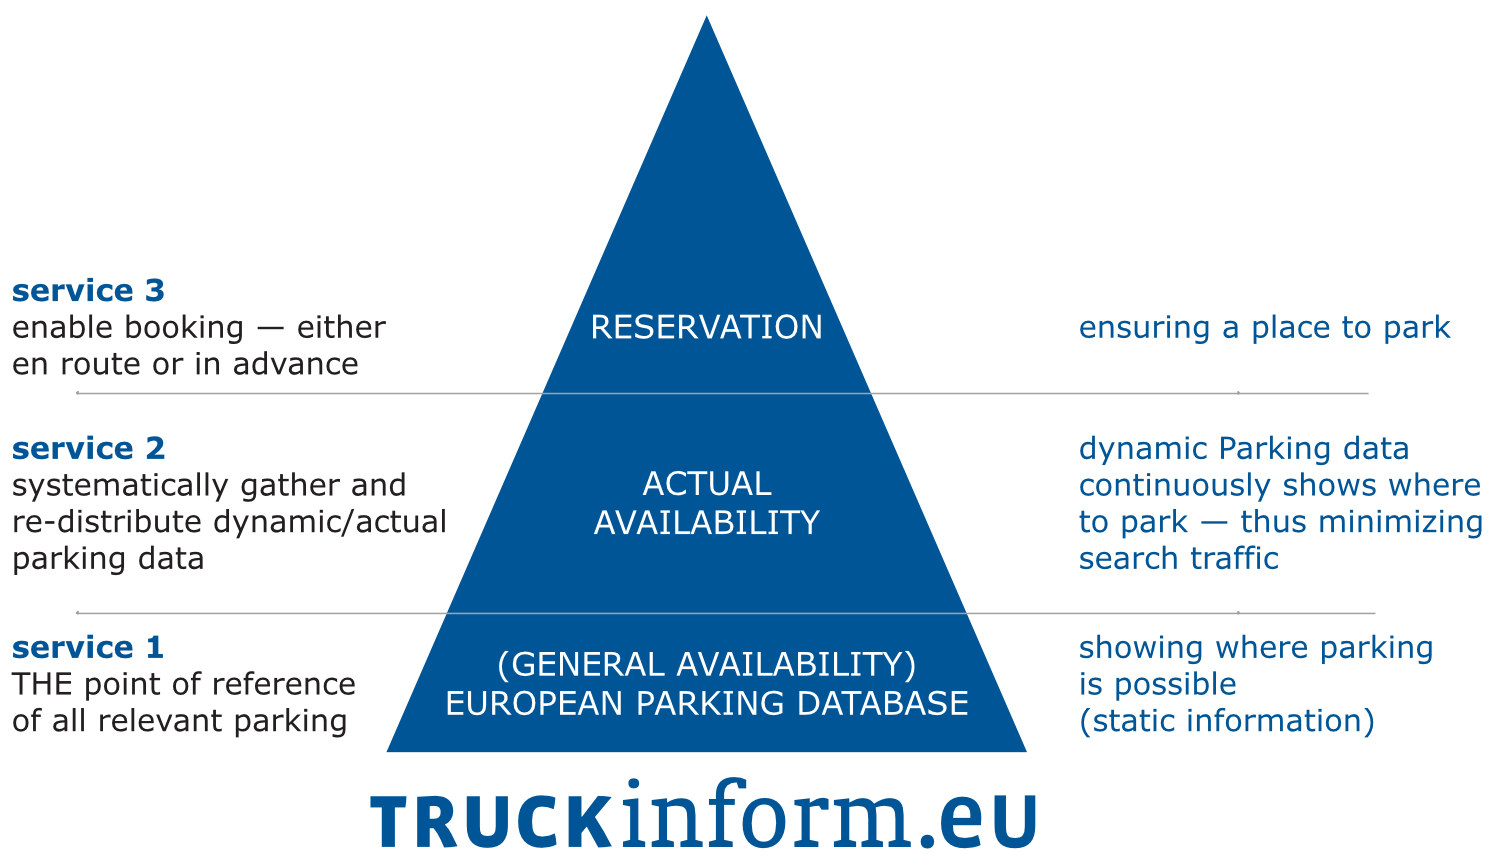 Truckinform diagram